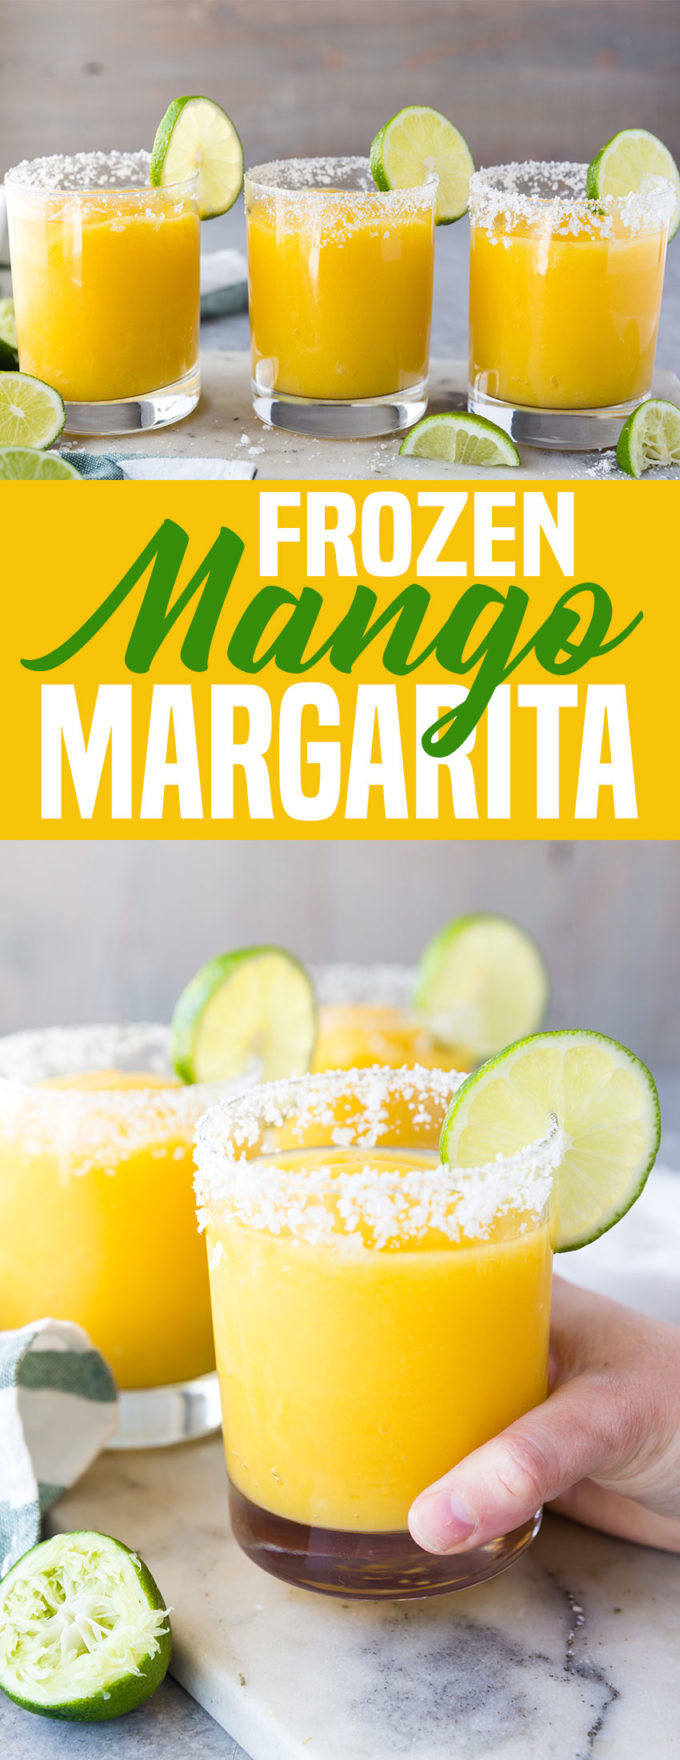 Fullsize Of How To Make Frozen Margaritas